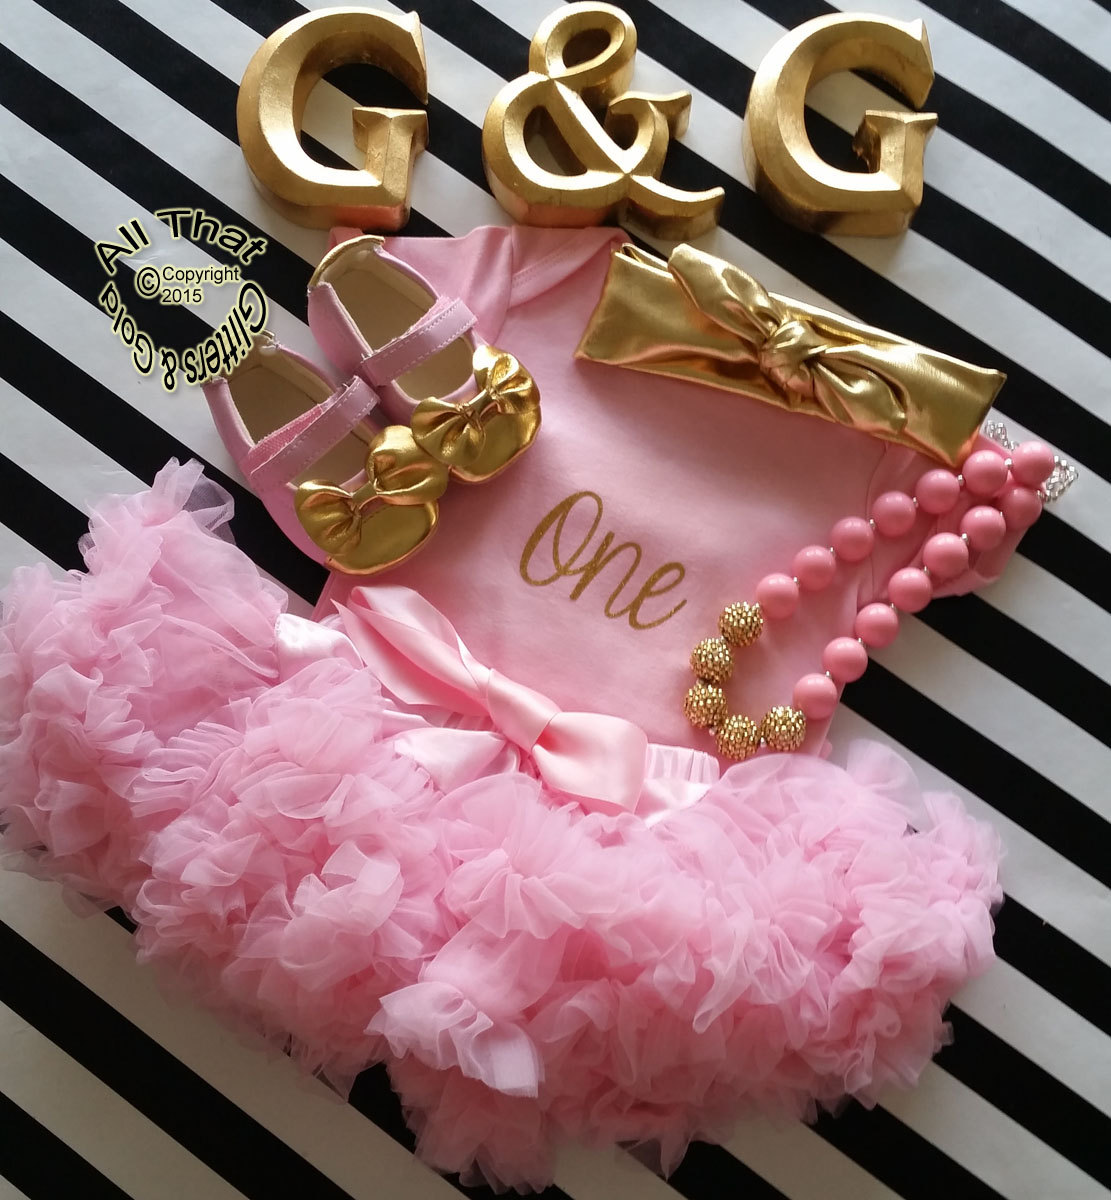 e6a8e34f5c Cute Gold 1st Birthday Outfits - Pink and Gold One First Birthday Outfit ...